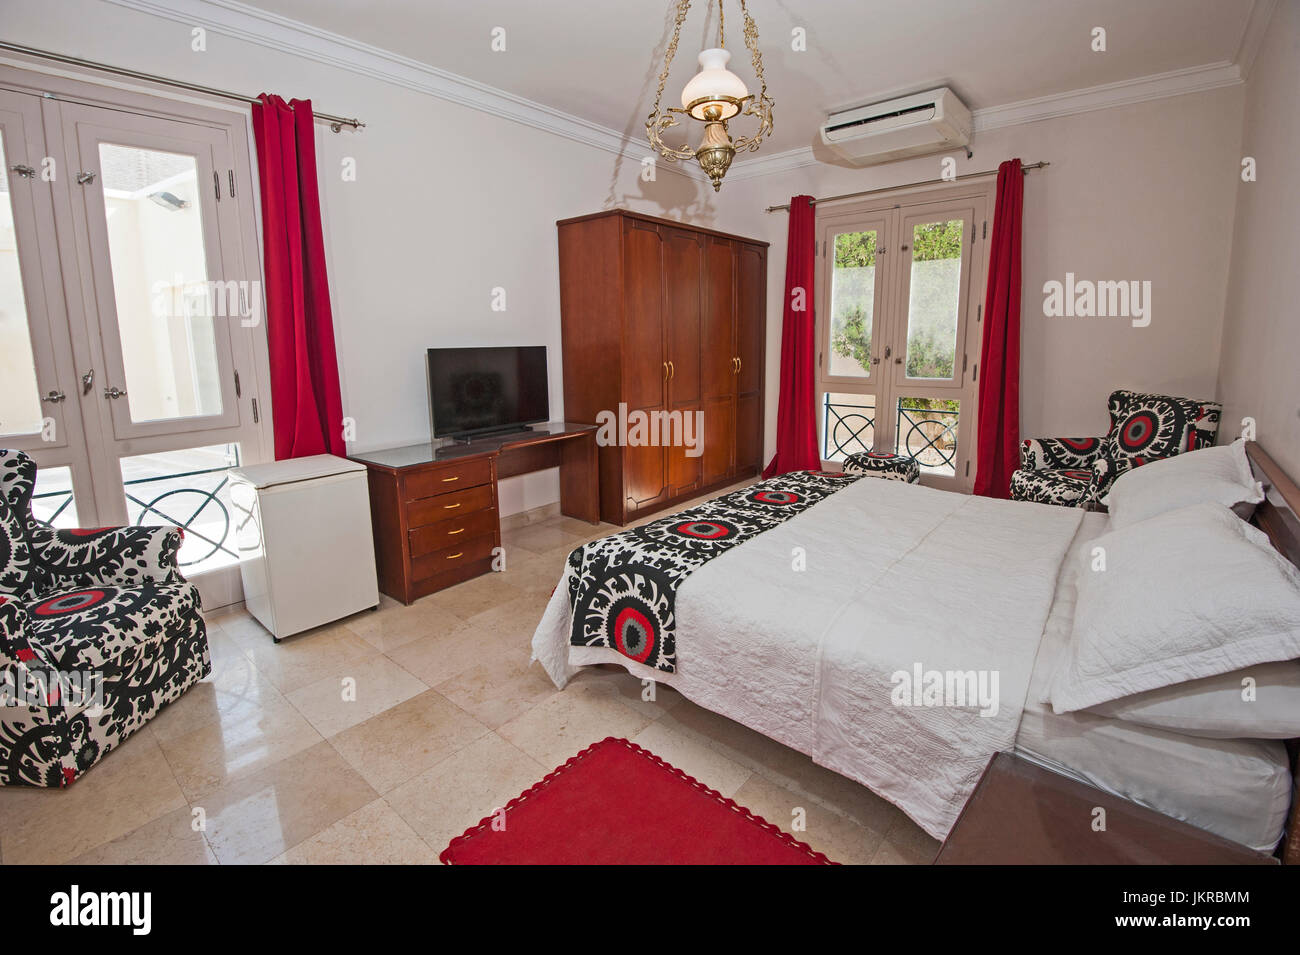 Interior Design Decor Furnishing Of Luxury Show Home Double Bedroom With Furniture